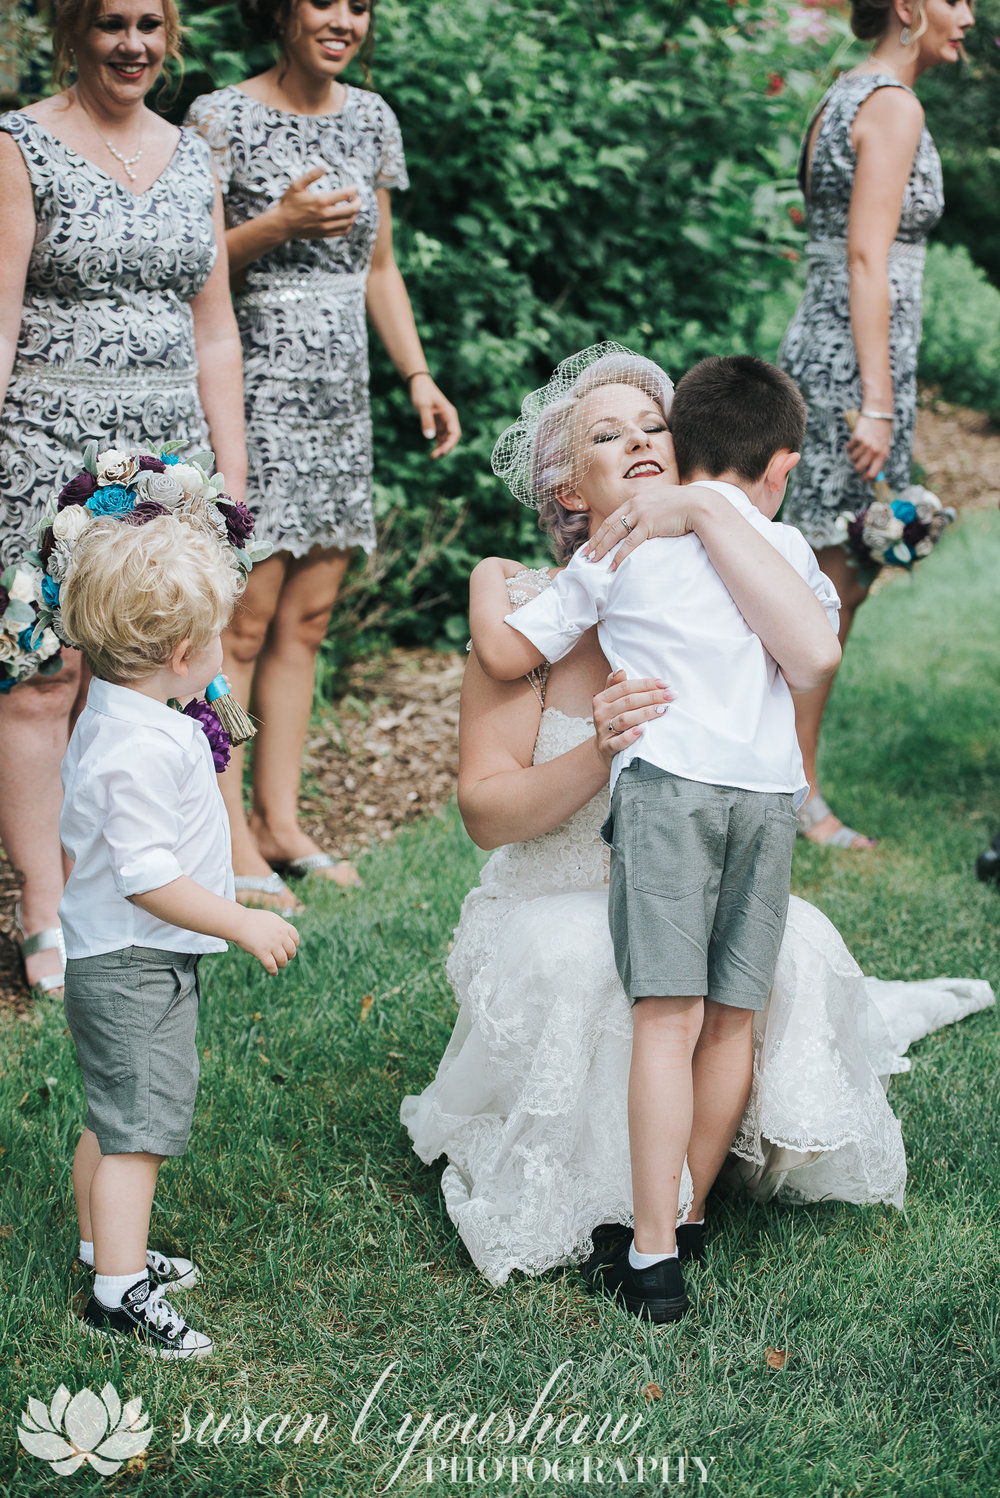 BLOG Kissy and Zane Diehl 07-14-2018 SLY Photography-132.jpg